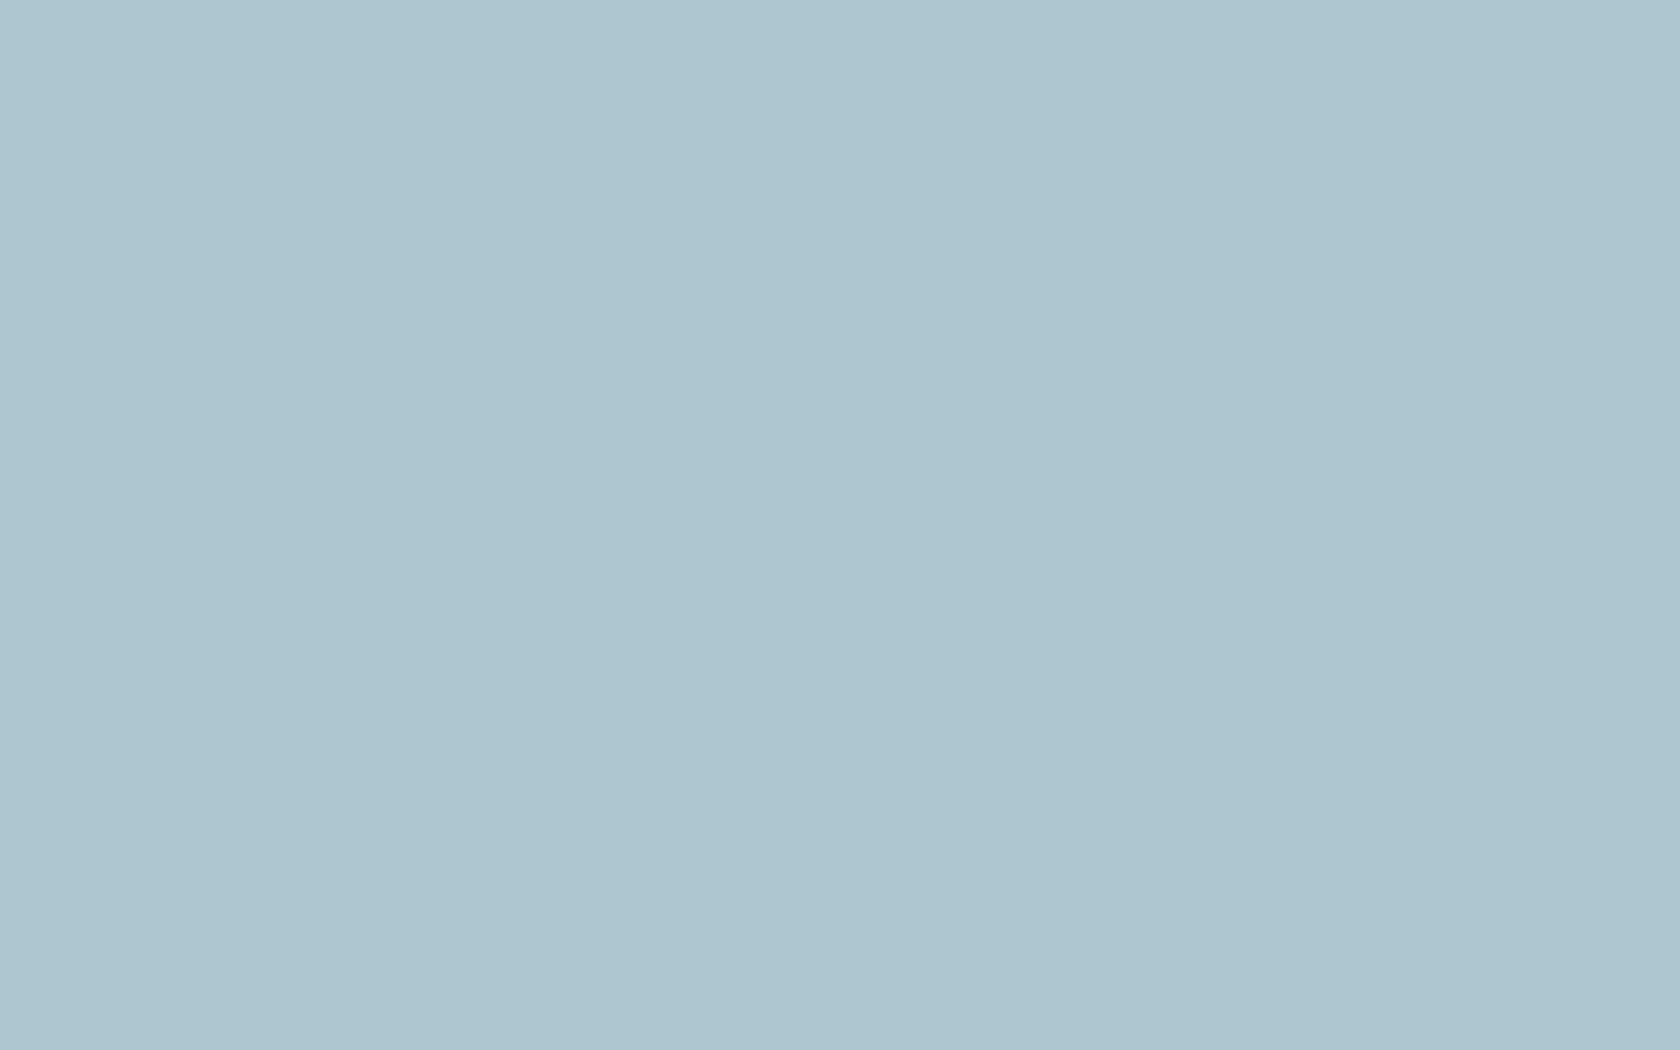 1680x1050 Pastel Blue Solid Color Background